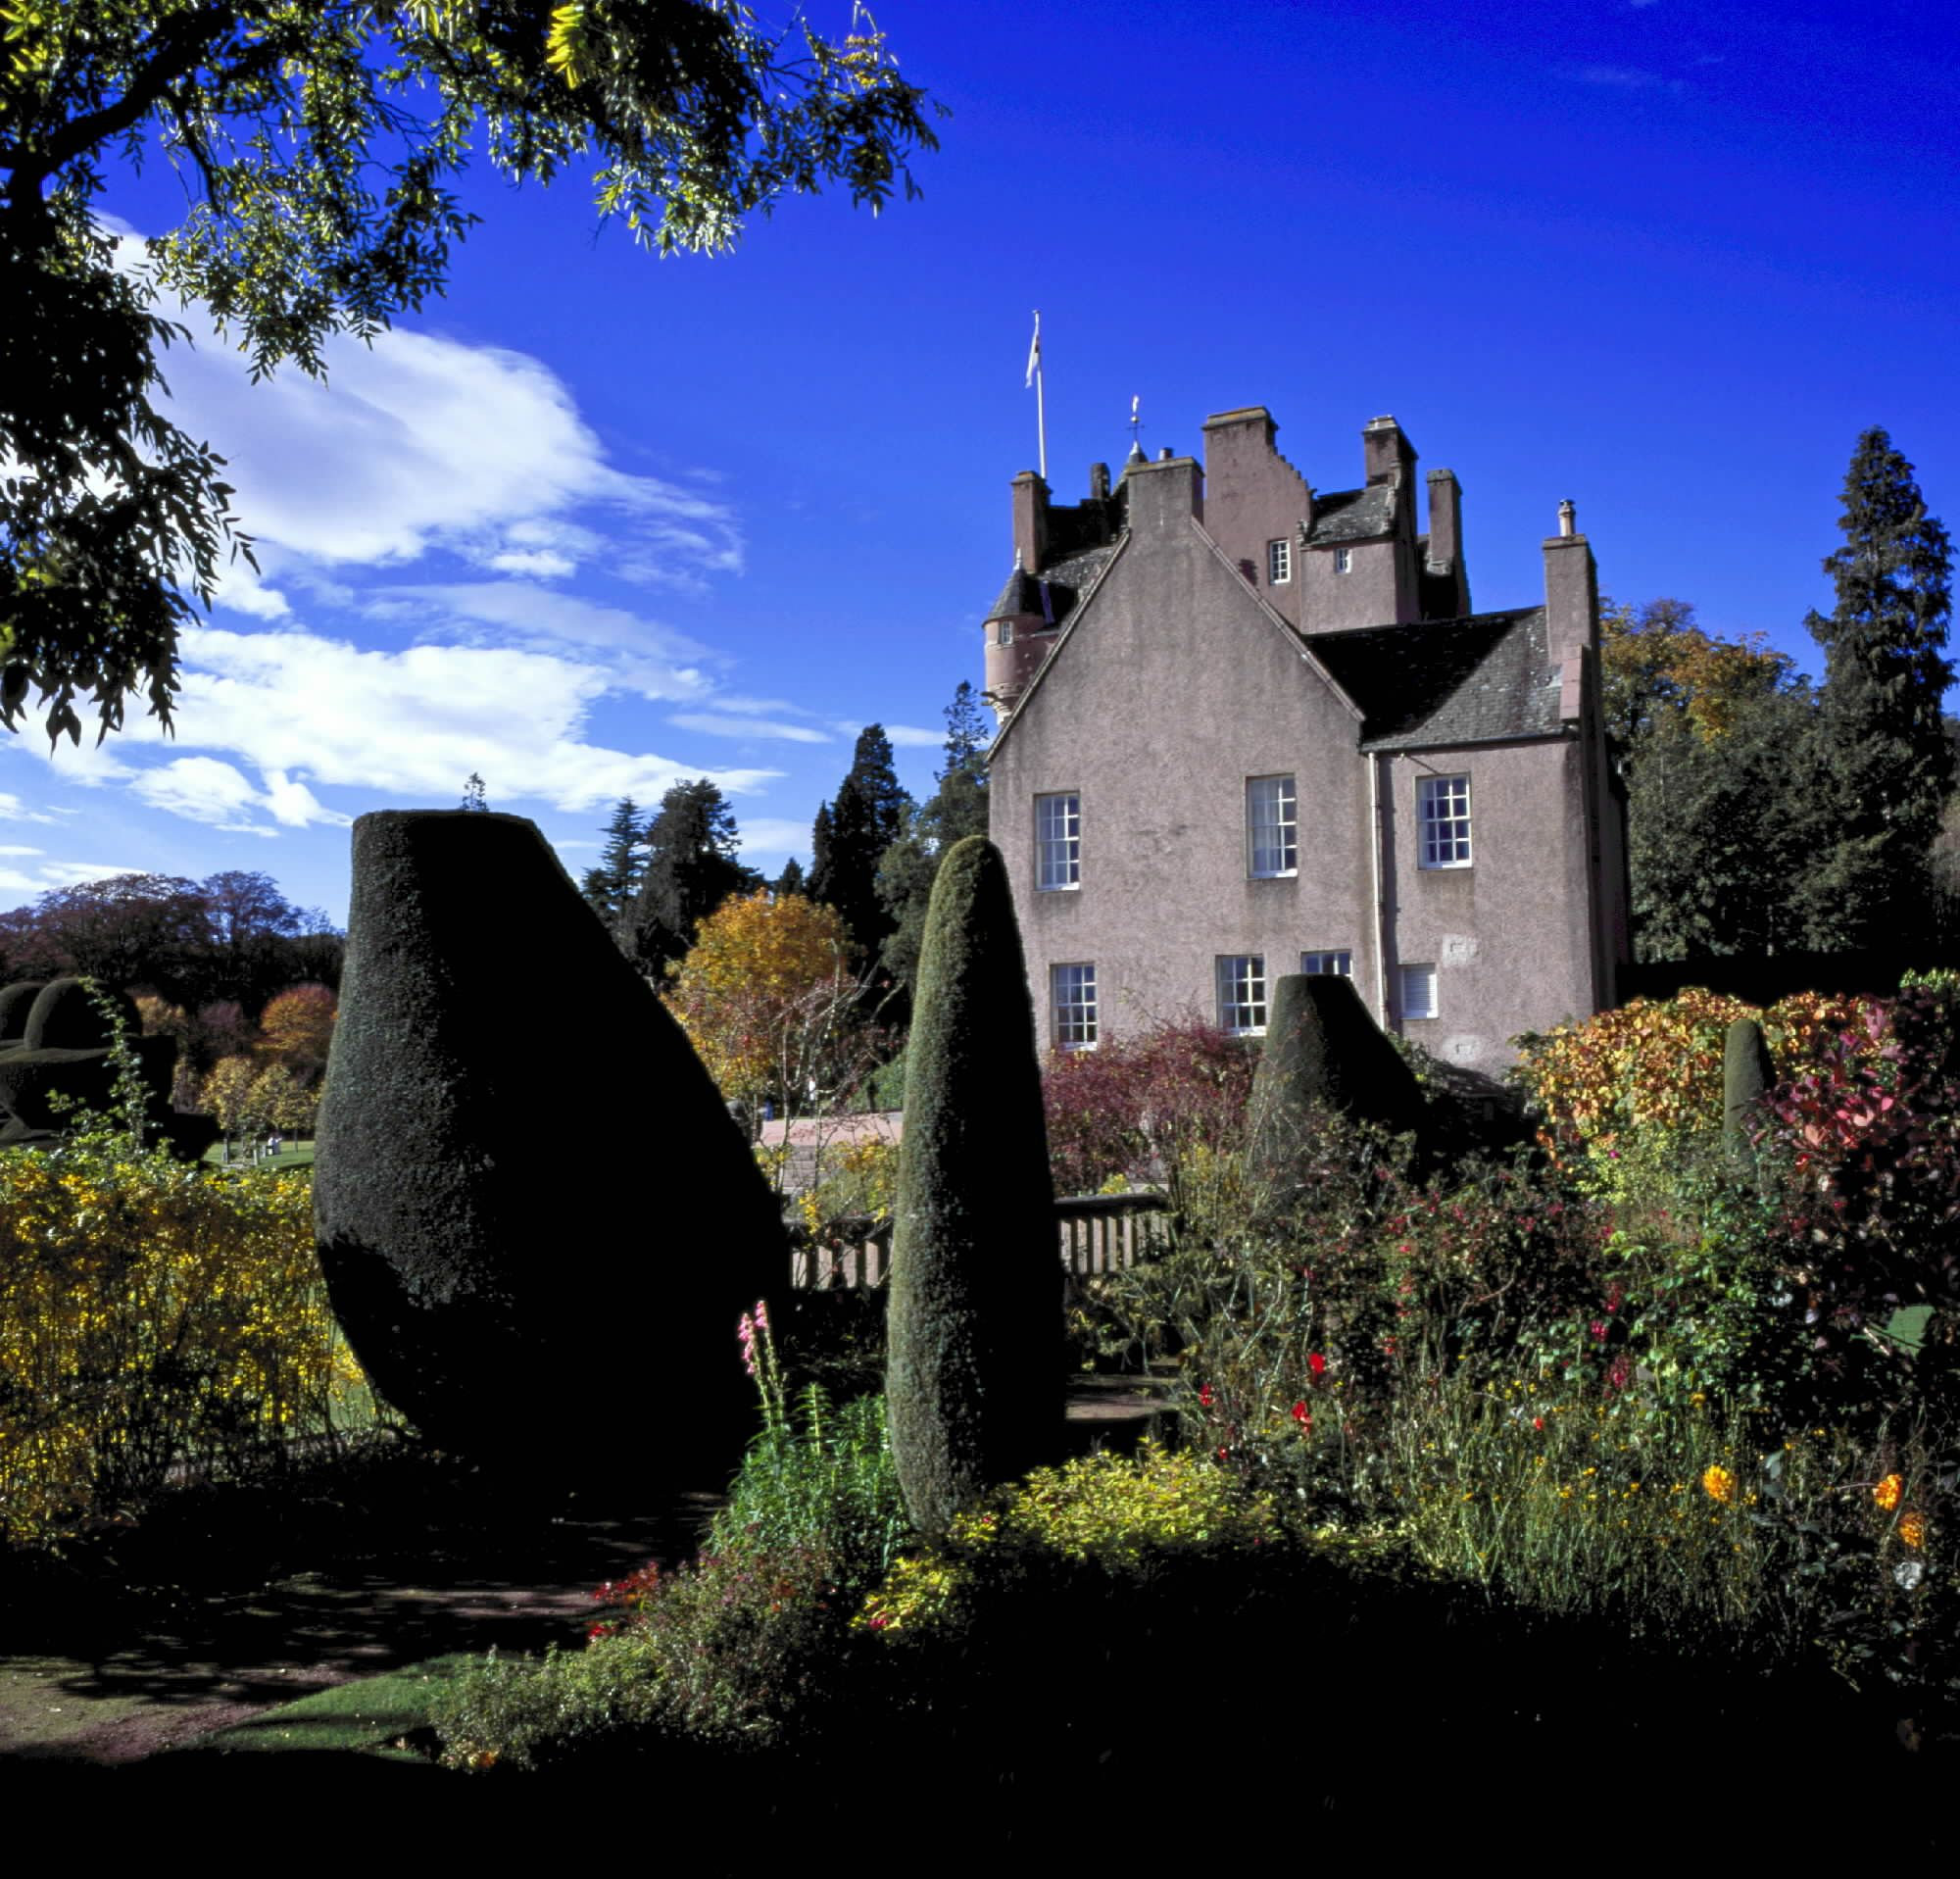 Crathes, the gems and treasures of Scotland's fairy-tale castle